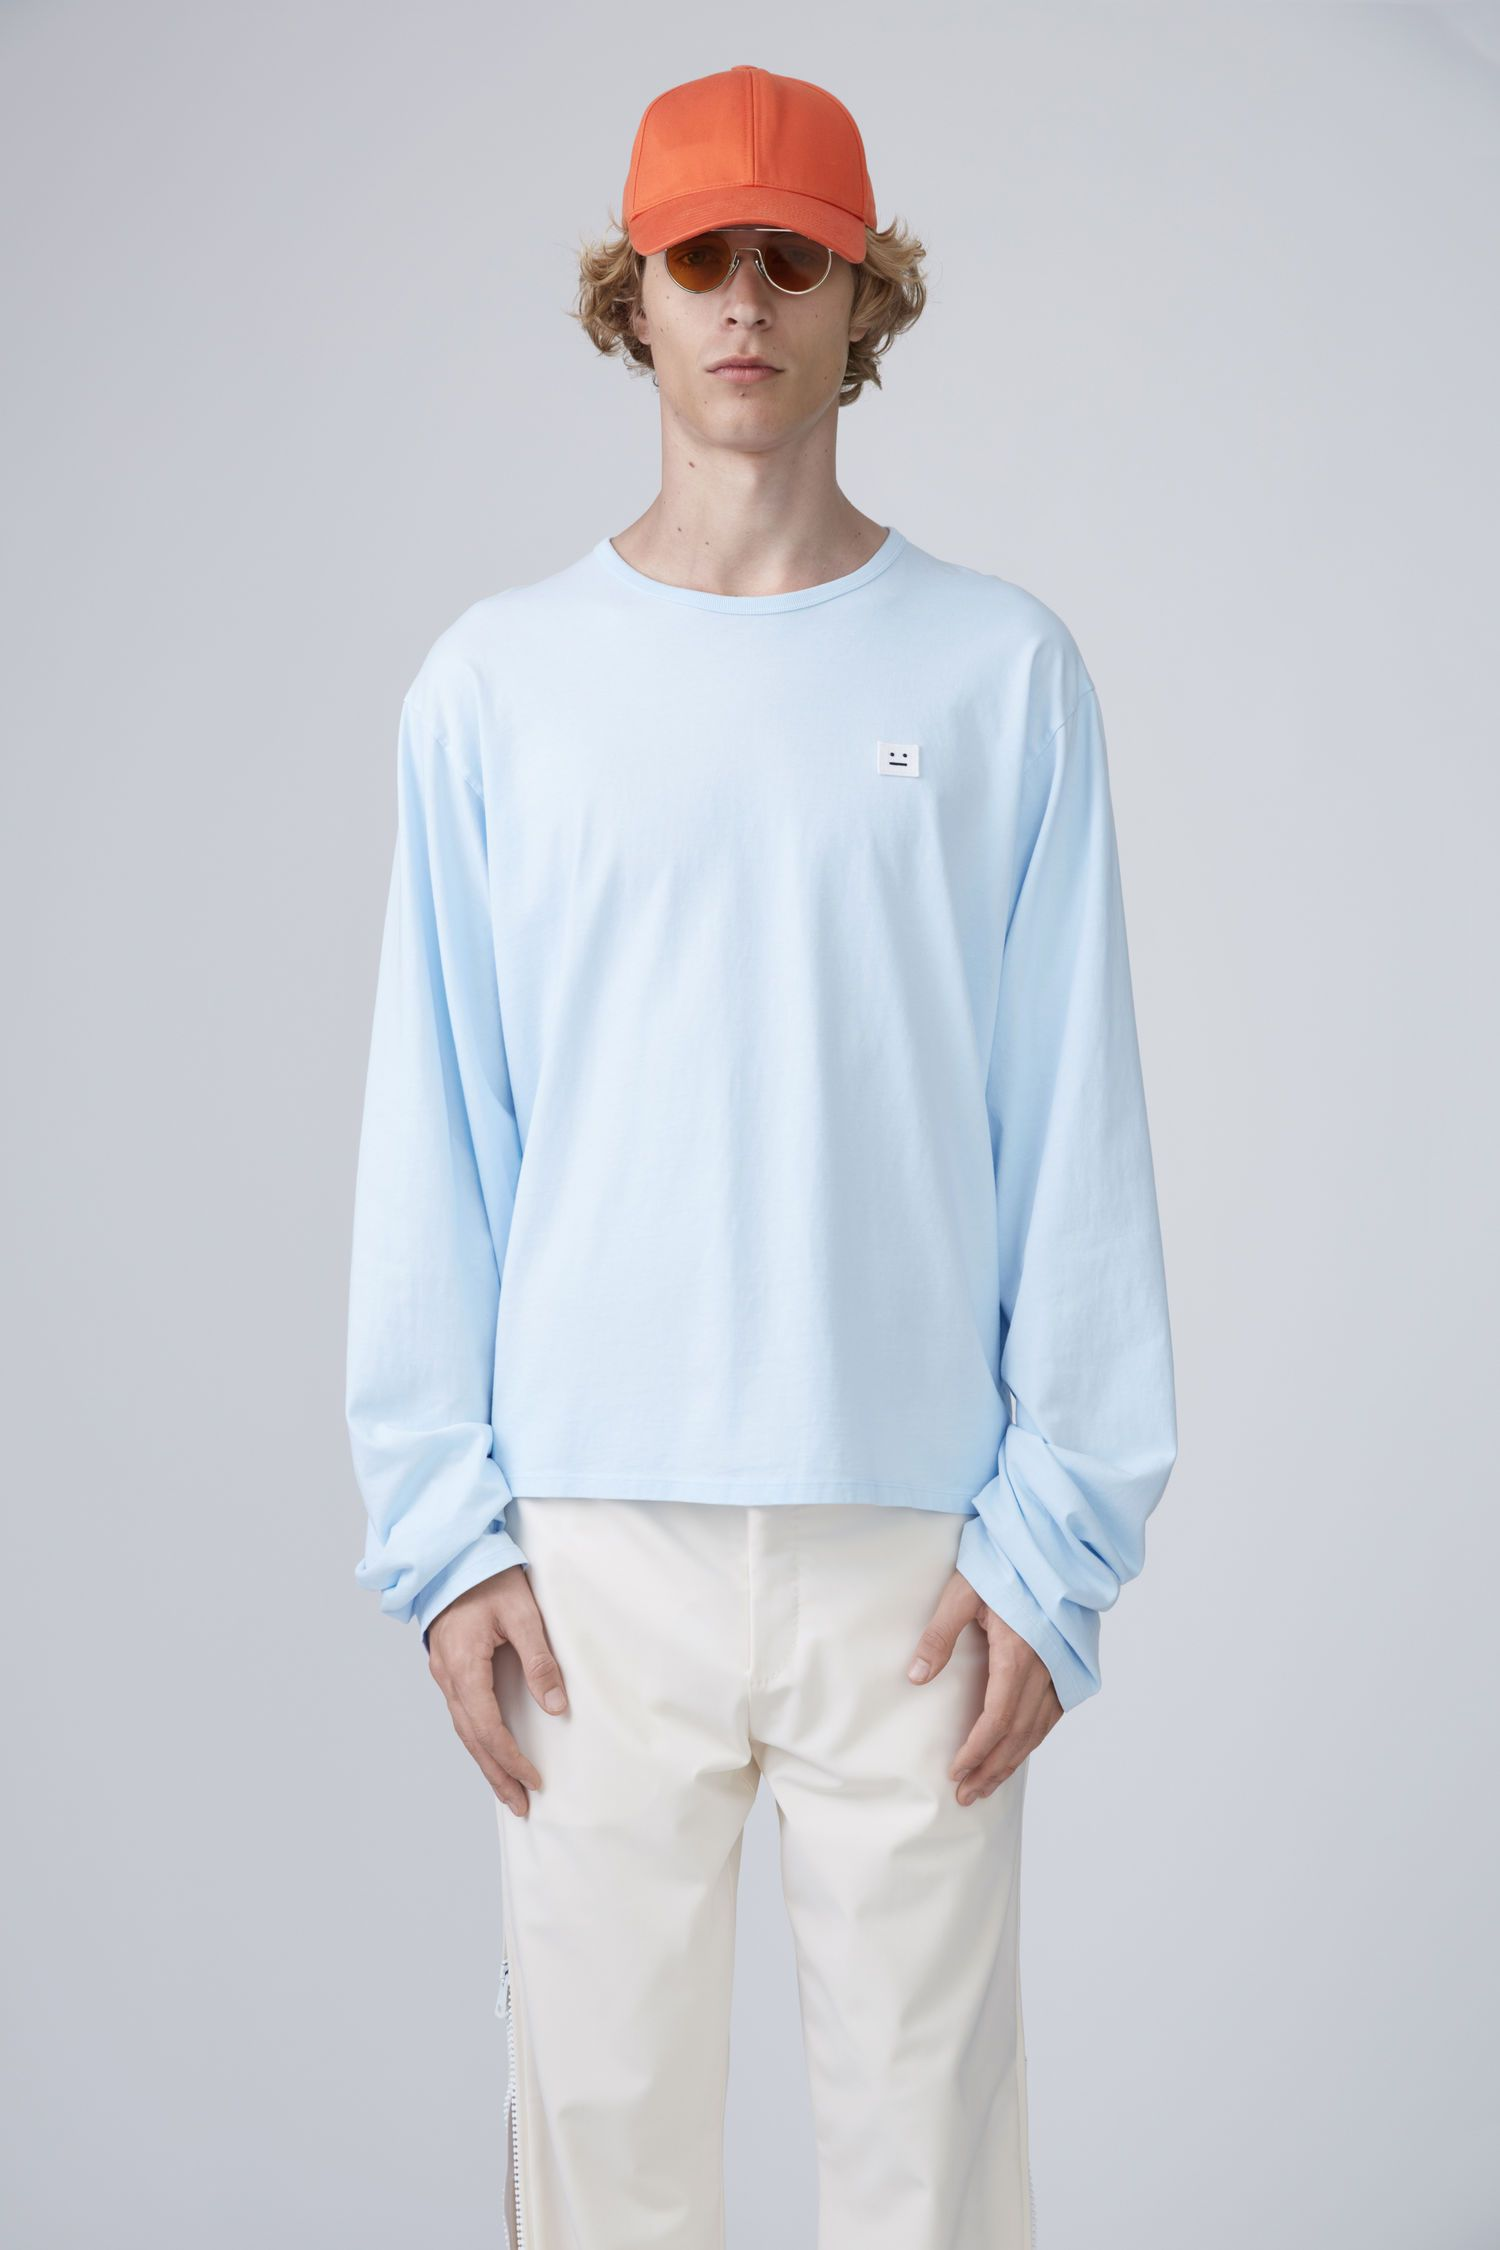 Acne studios · ACNE STUDIOS Fello Face Light Blue.